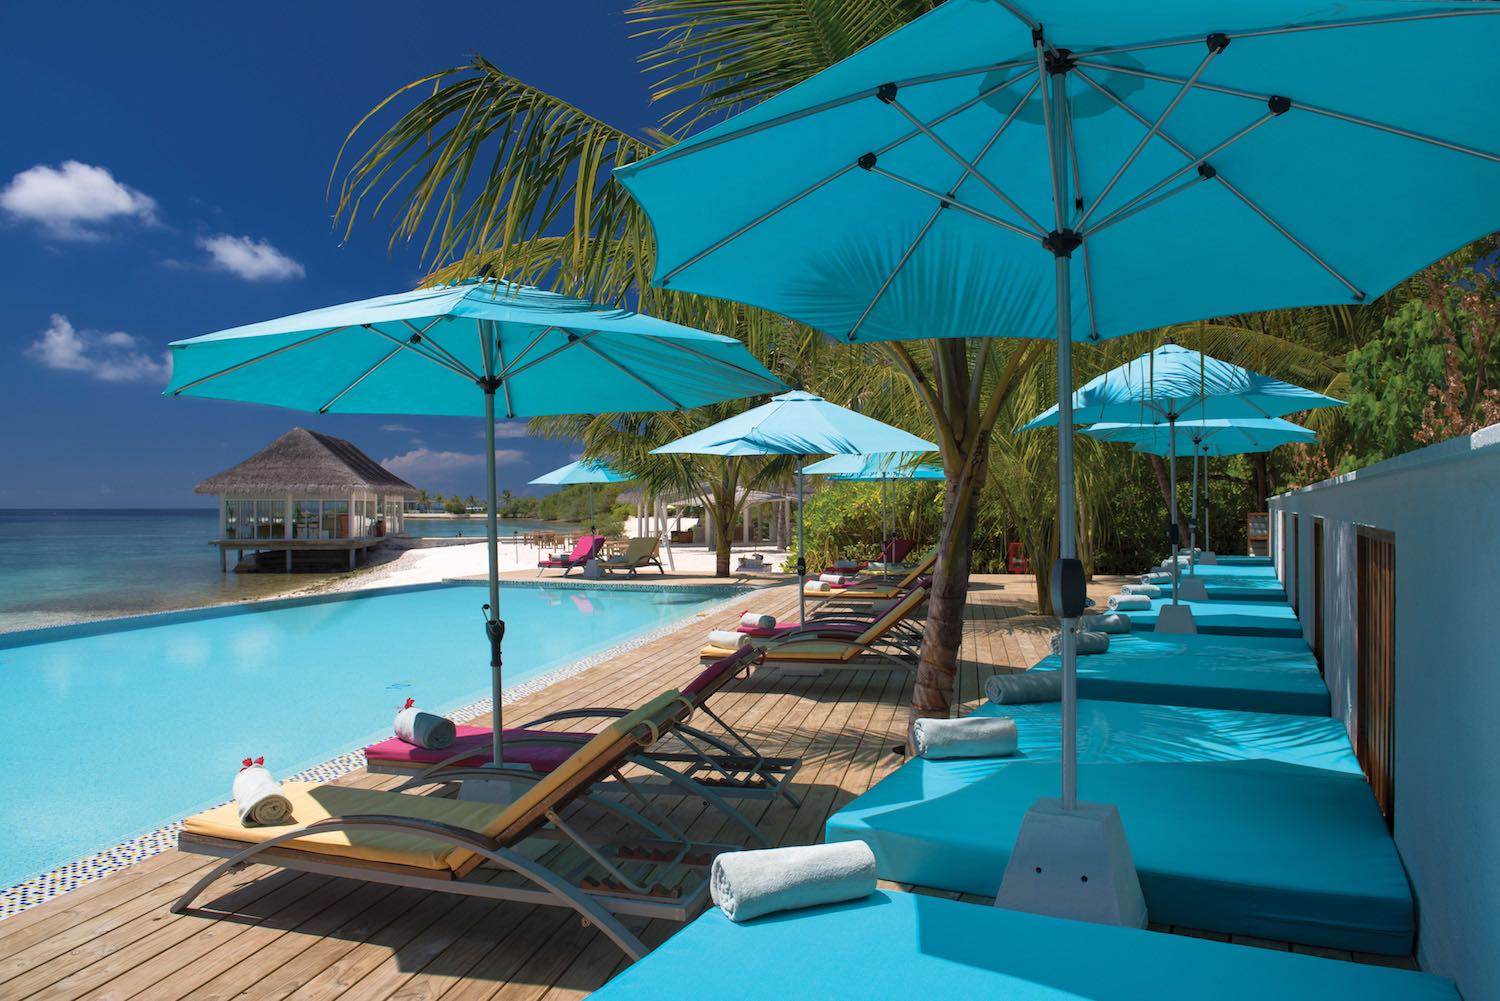 maldives-oblu-by-atmosphere-at-helengeli-adult-only-pool-holiday-honeymoon-vacation-invite-to-paradise.jpg